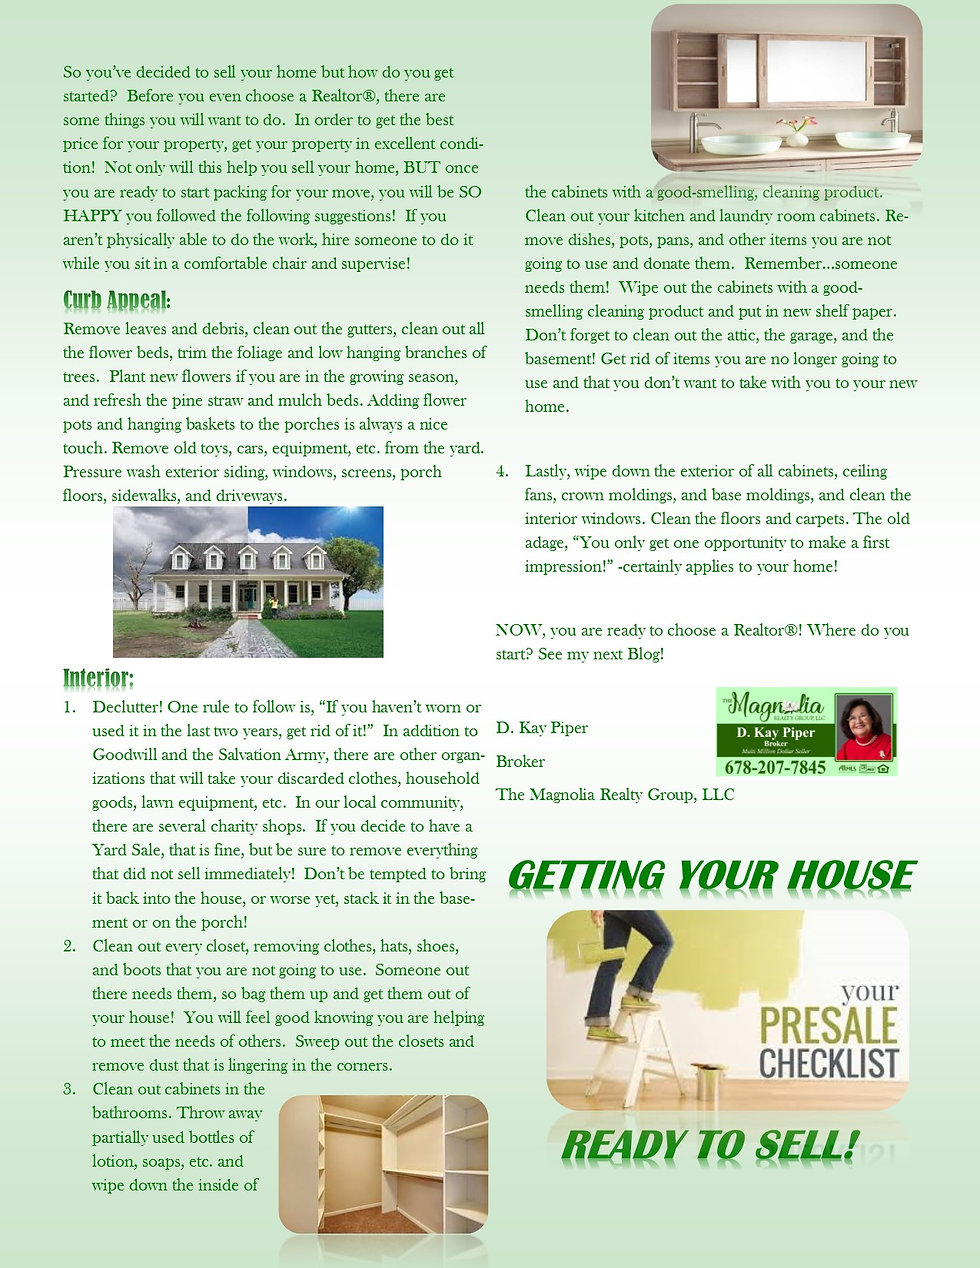 Getting your house ready to sell (004).j